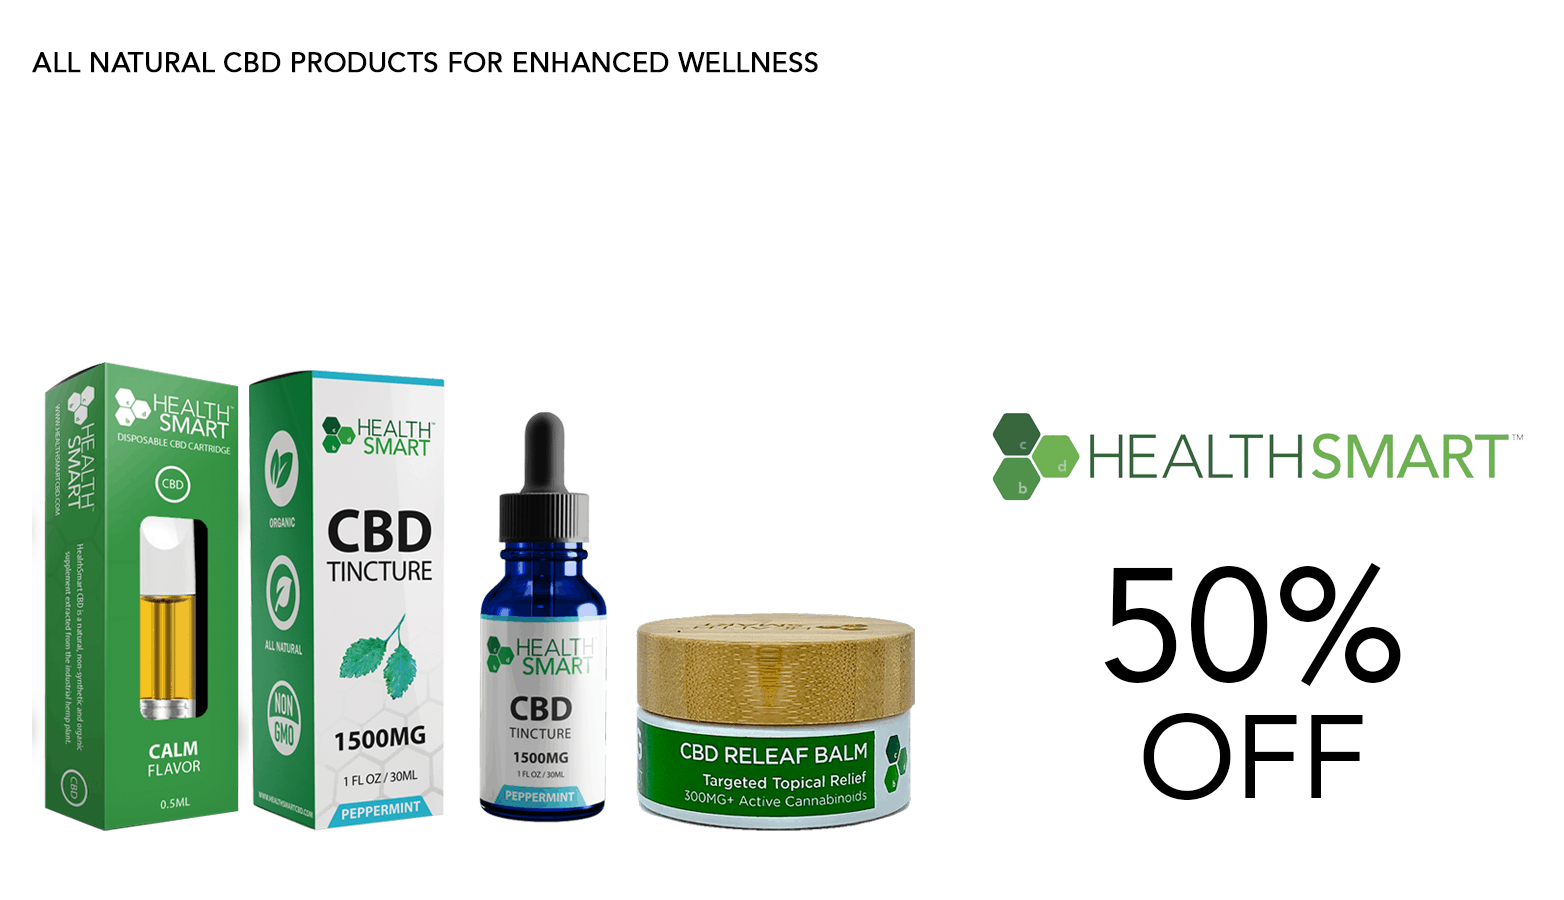 Things To Know About CBD Benefits